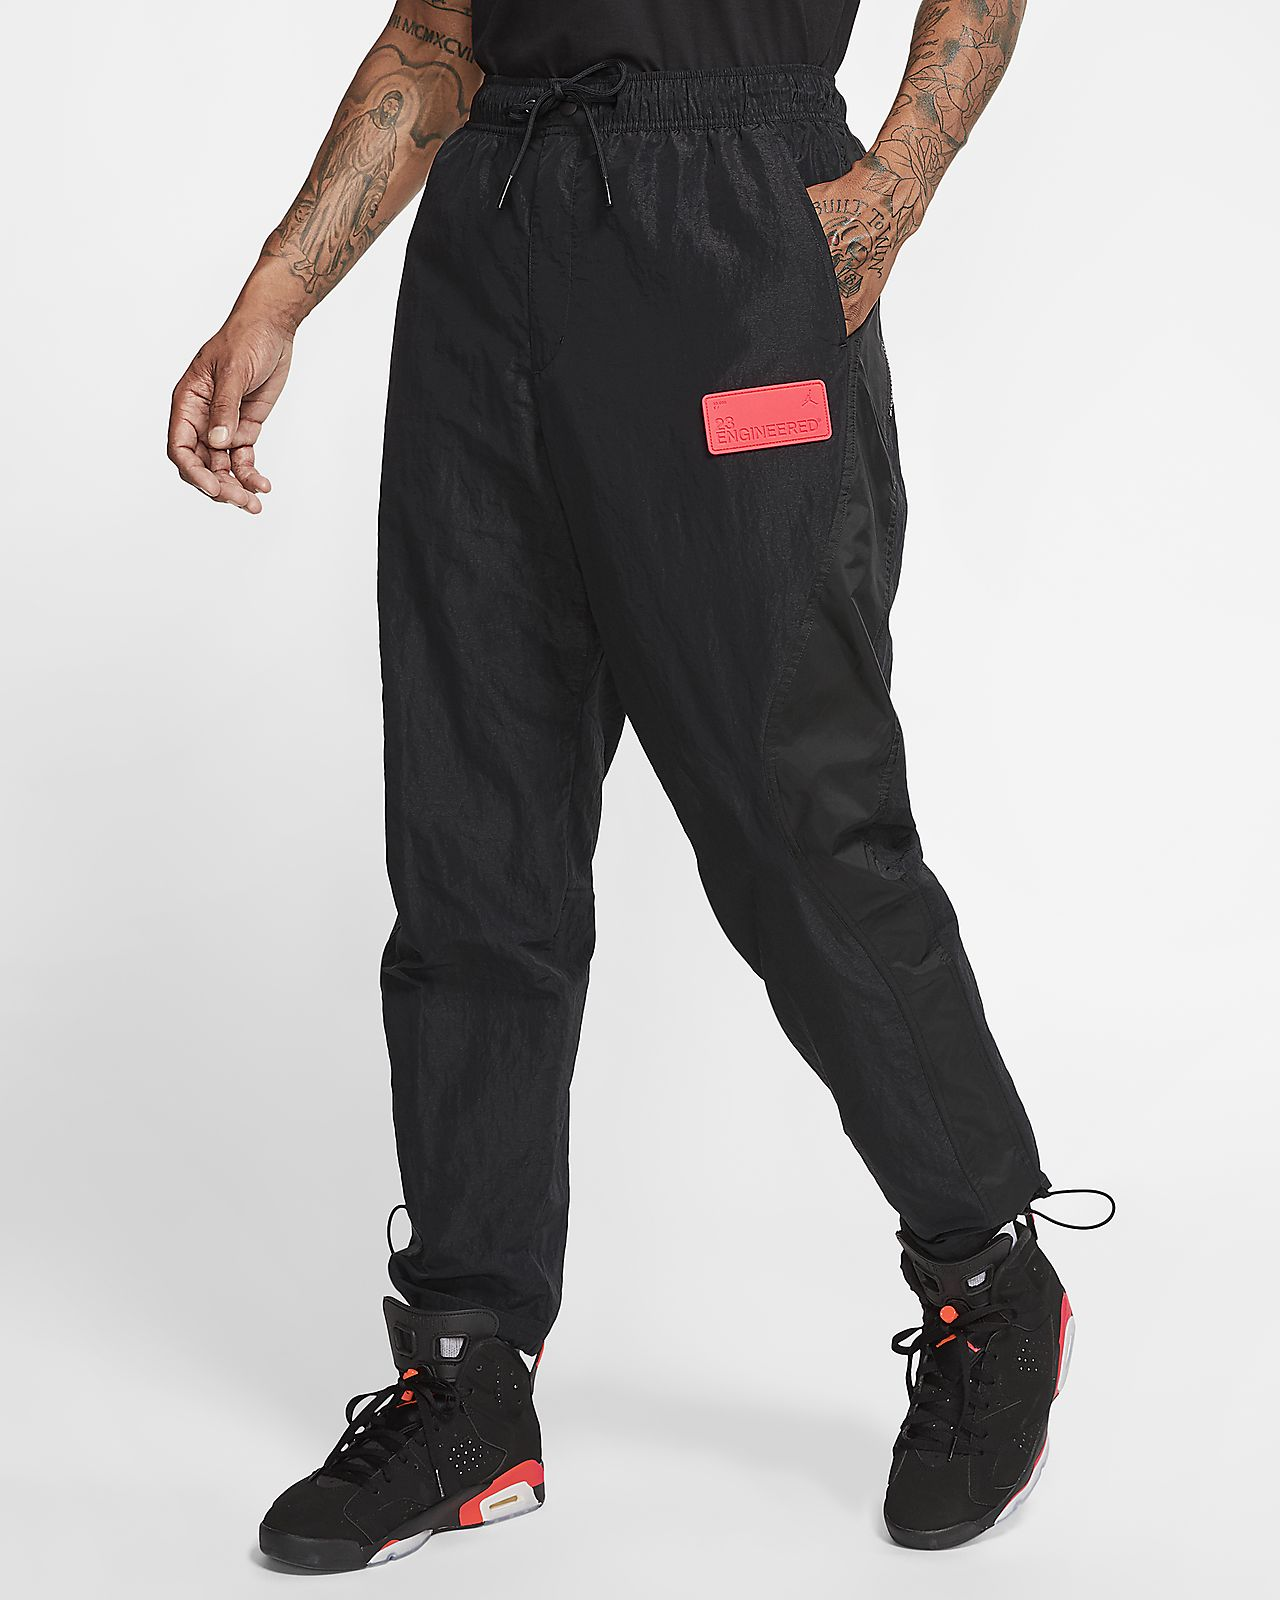 Jordan 23 Engineered Men's Nylon Pants